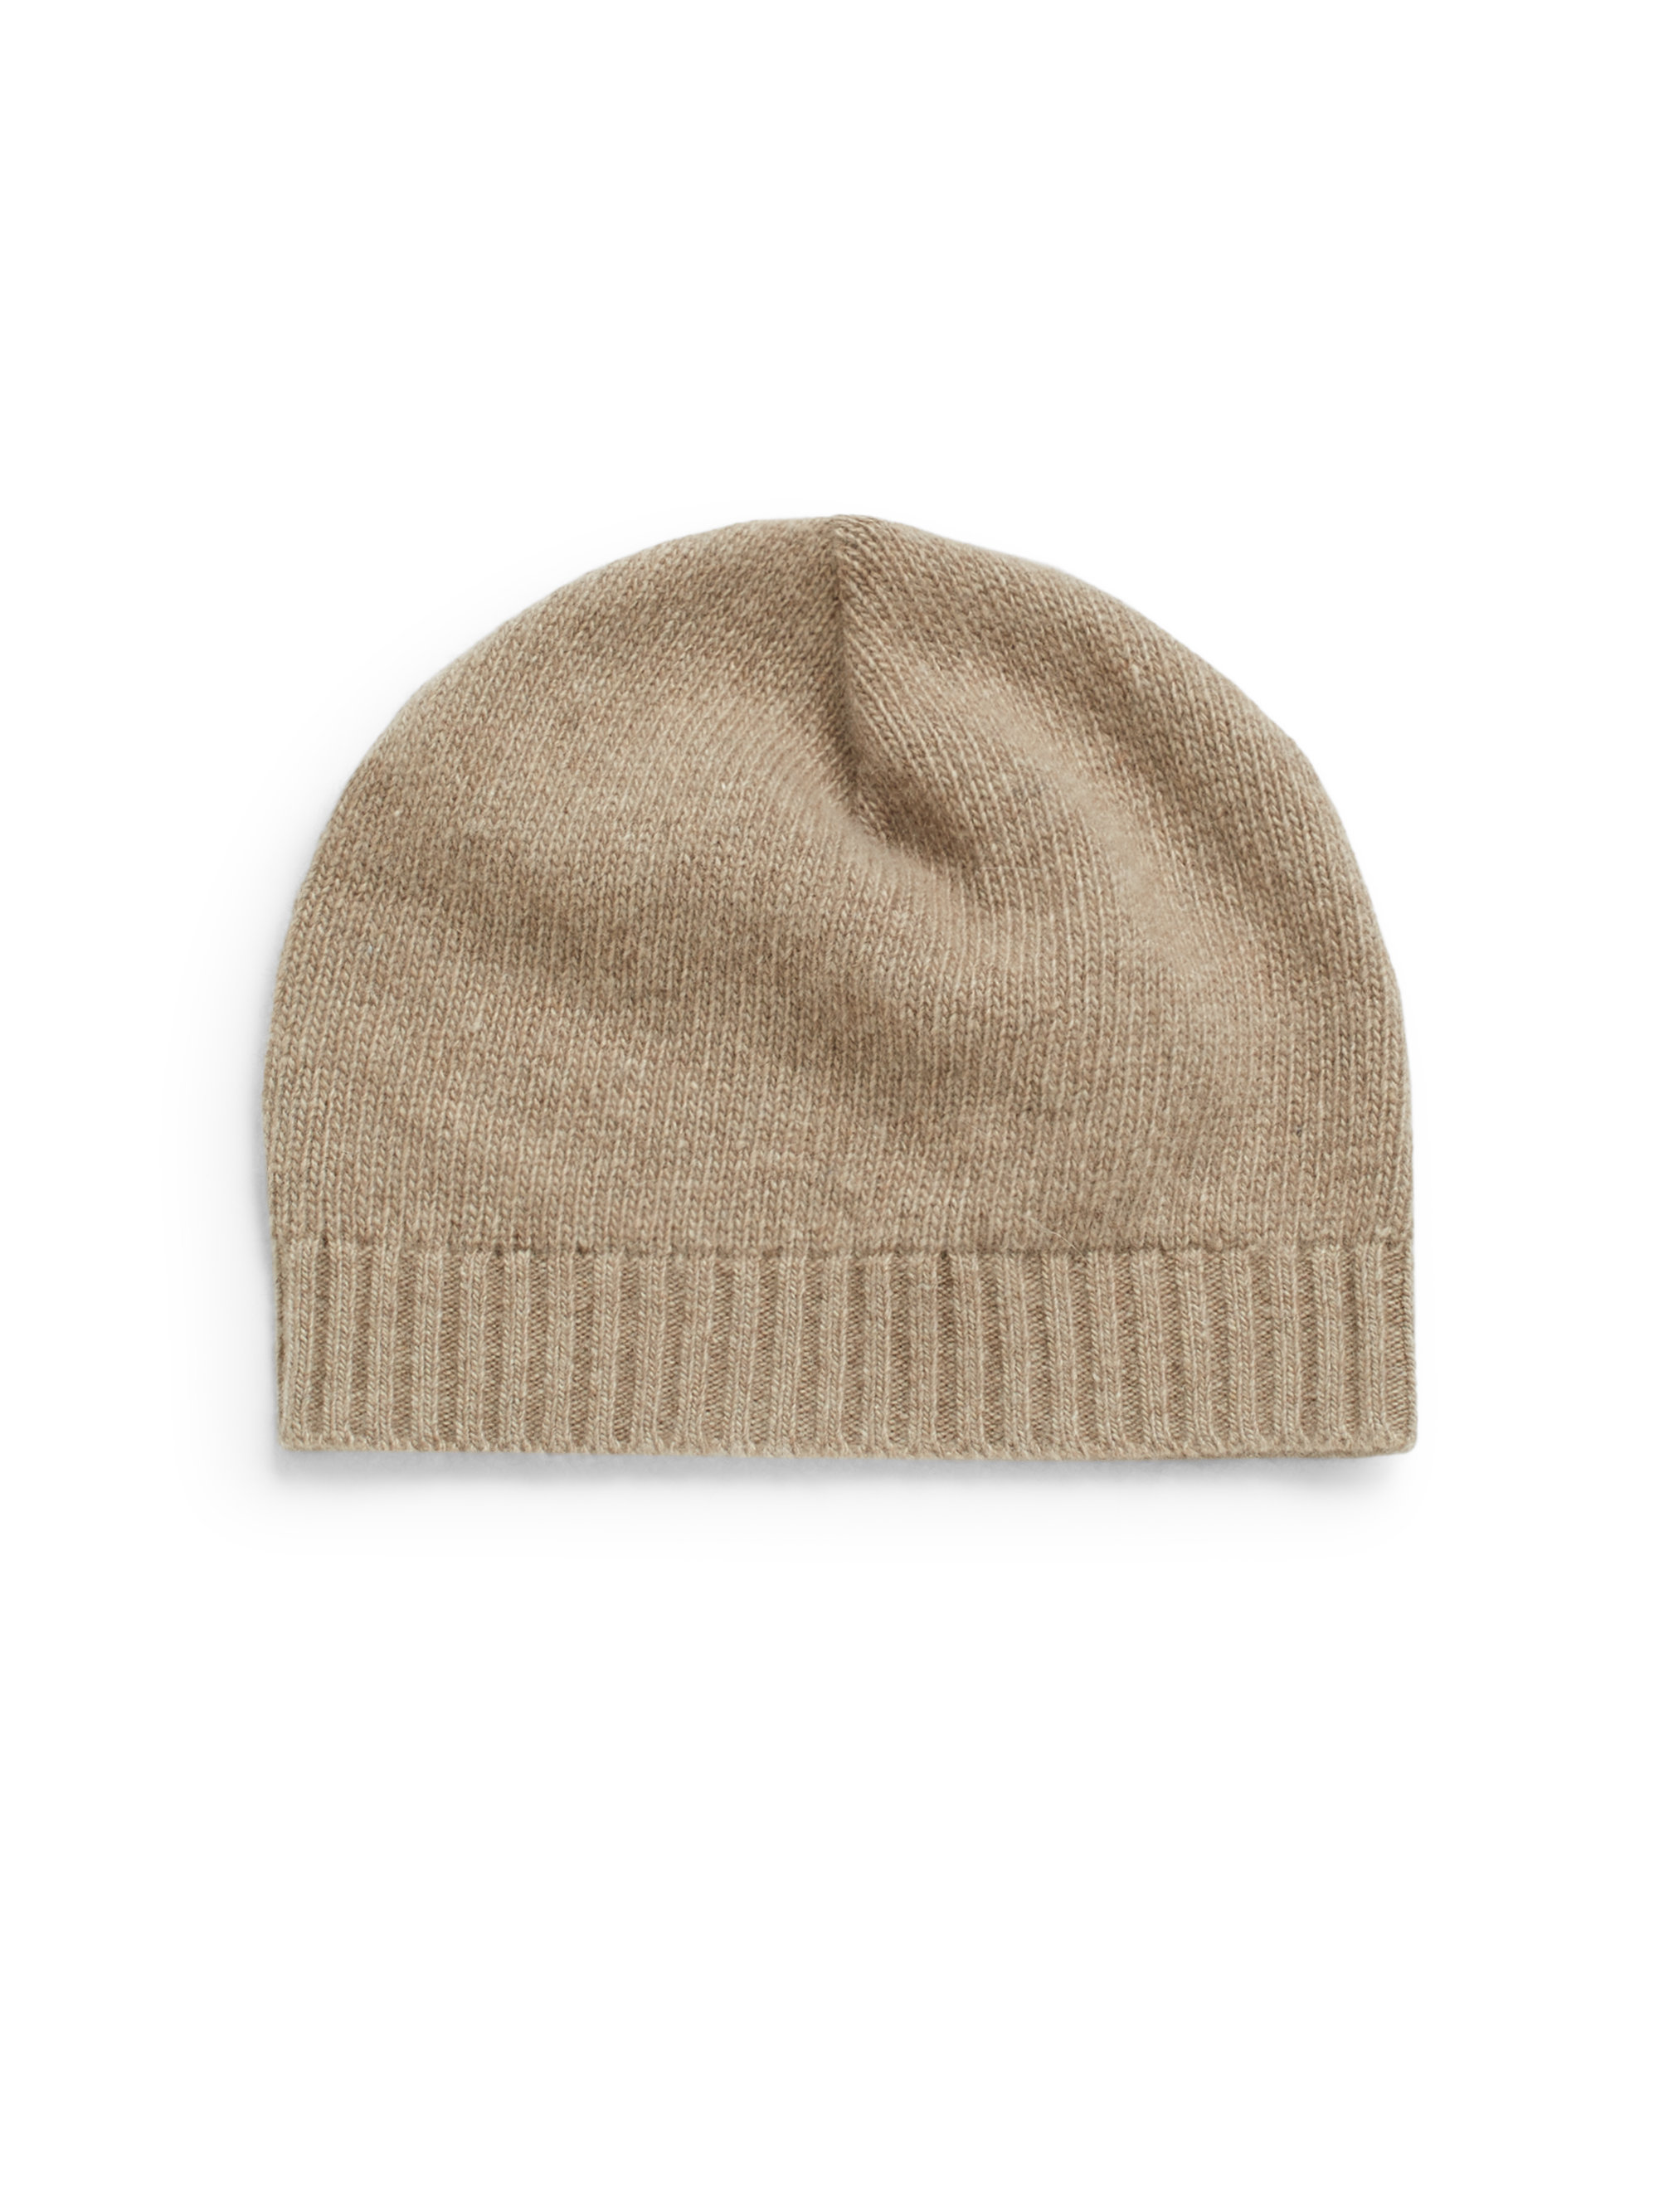 Knitting Pattern For Cashmere Beanie : Portolano Cashmere Knit Beanie in Brown for Men (NILE ...